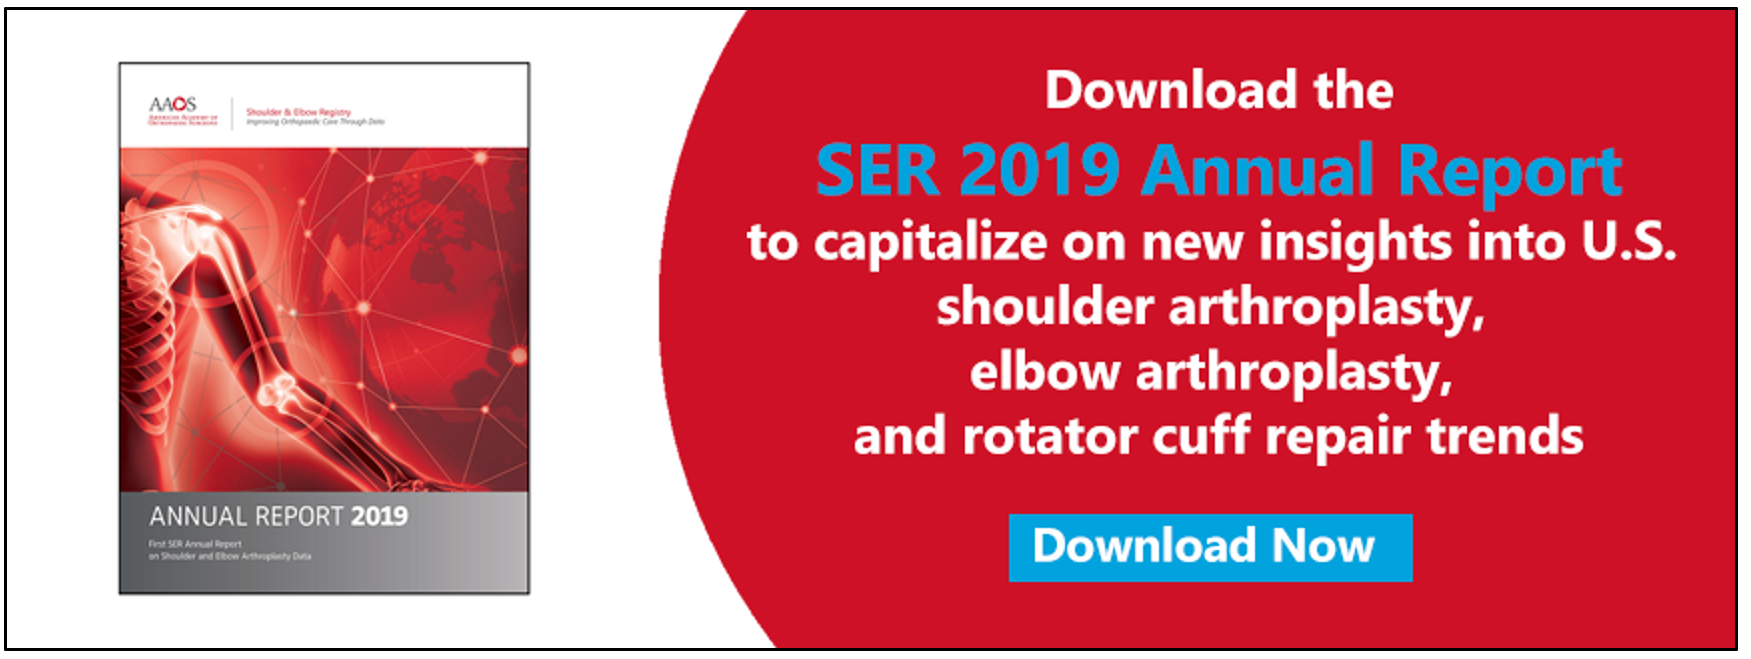 Download the SER 2019 Annual Report